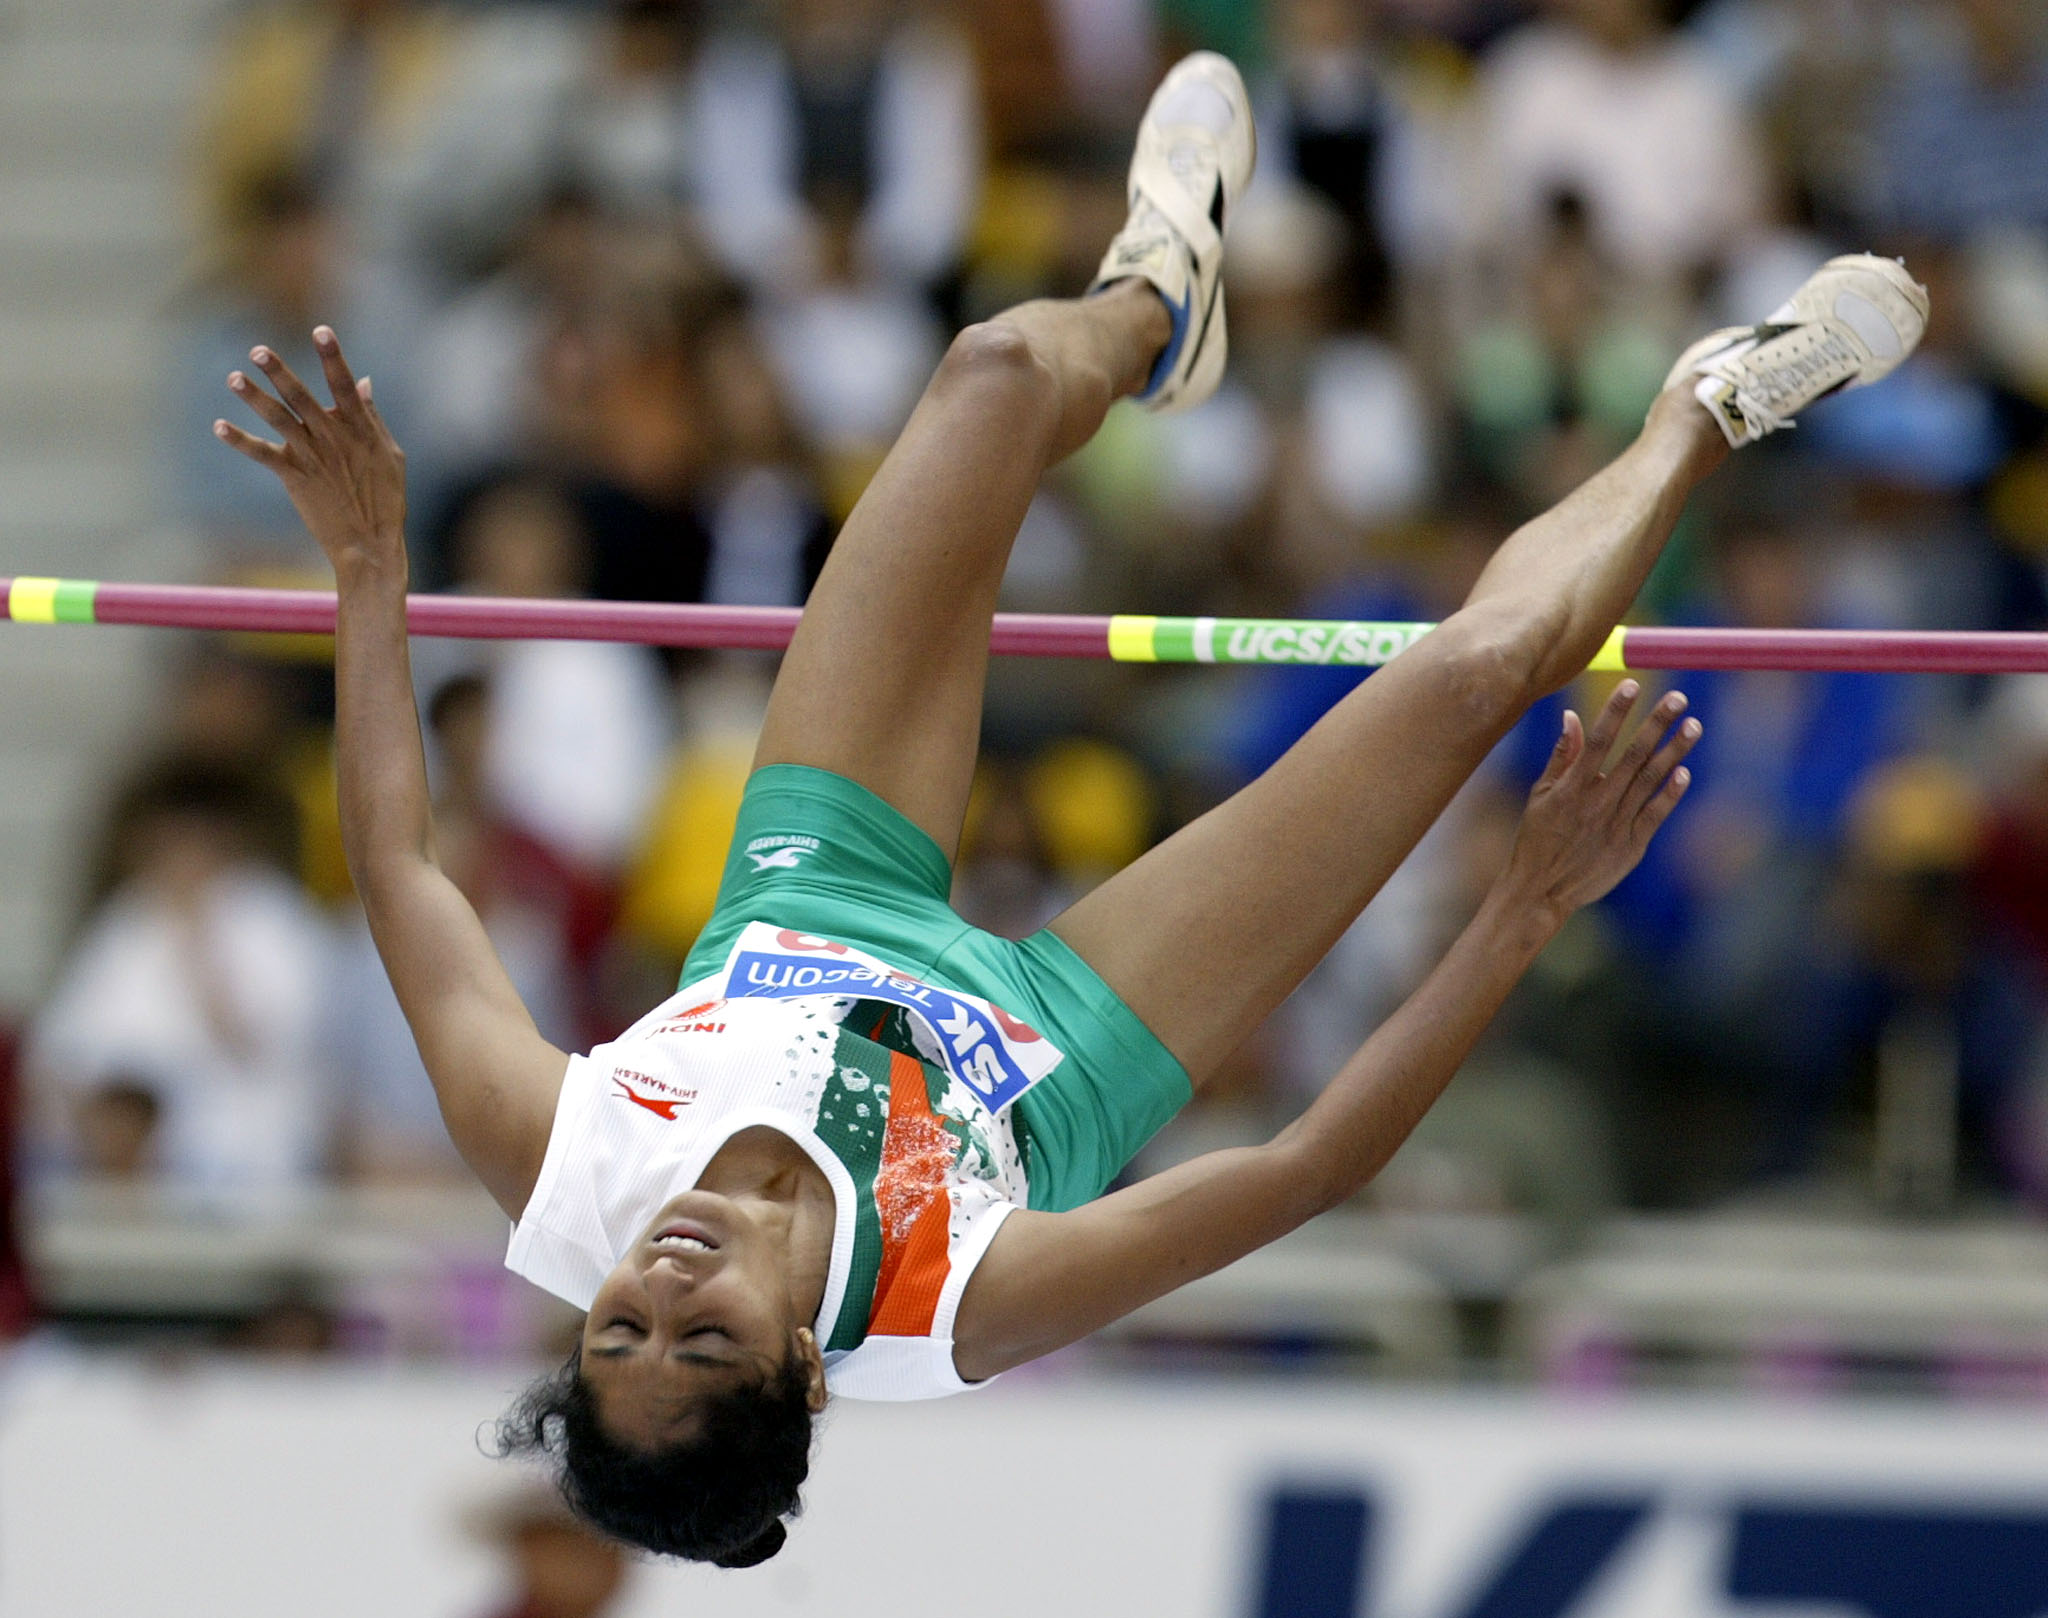 High Jumper Bobby Aloysius. Image Credit: Jason Reed / Reuters